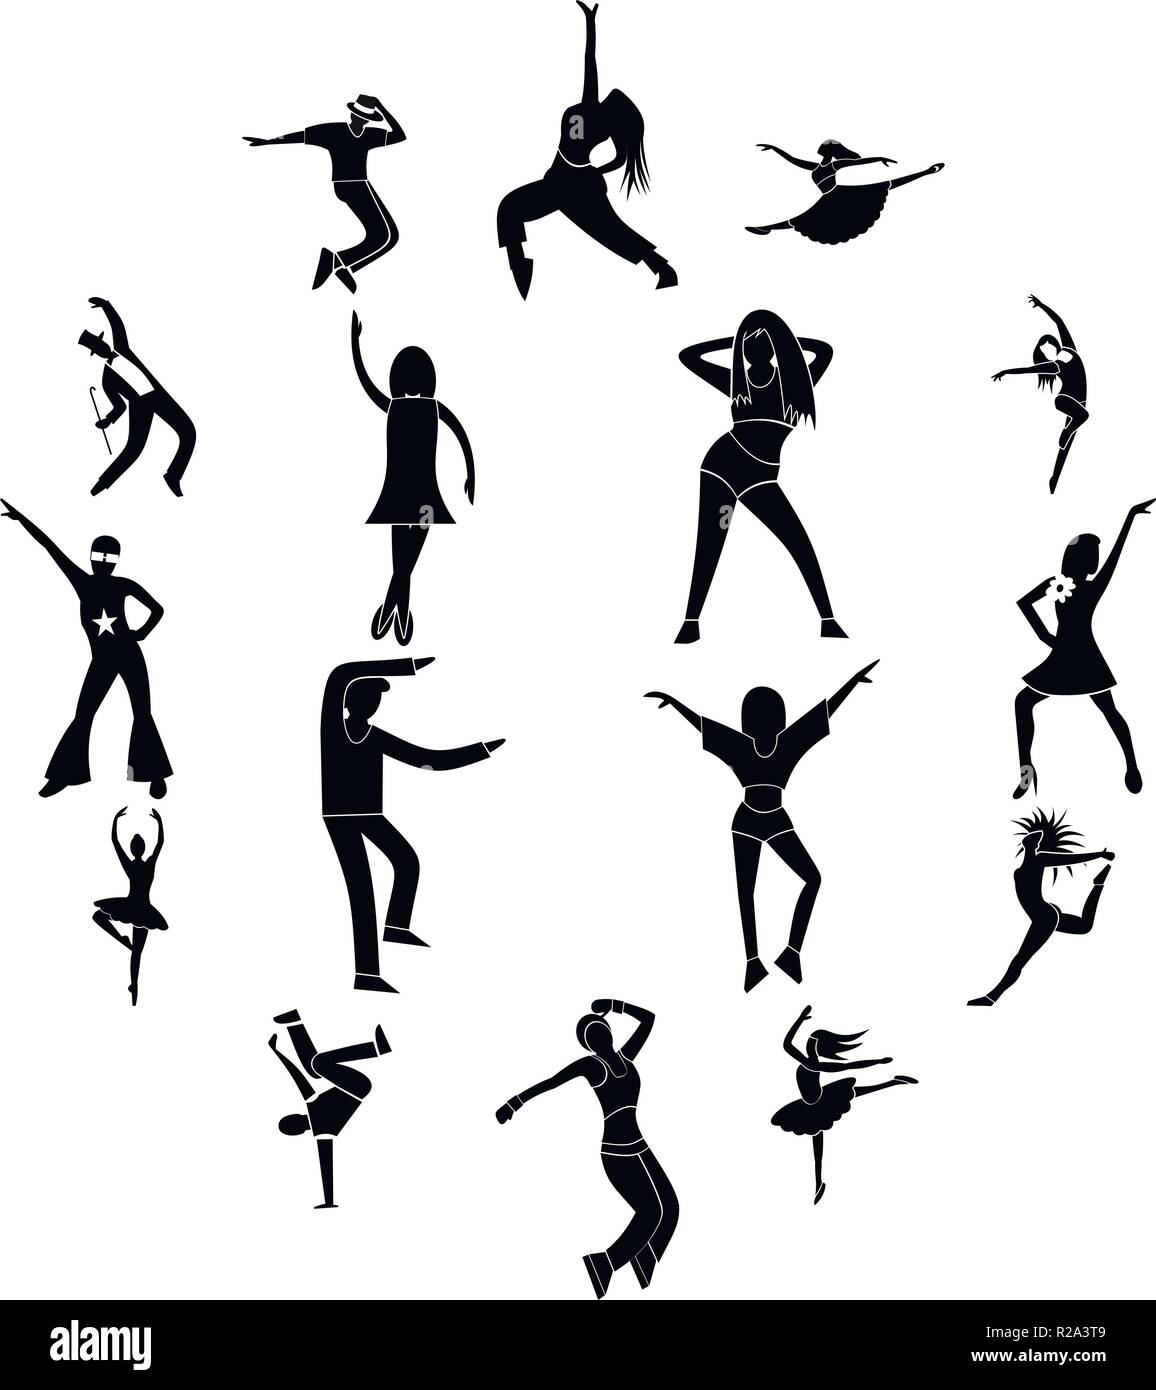 Dances simple icons set isolatedon white background - Stock Vector